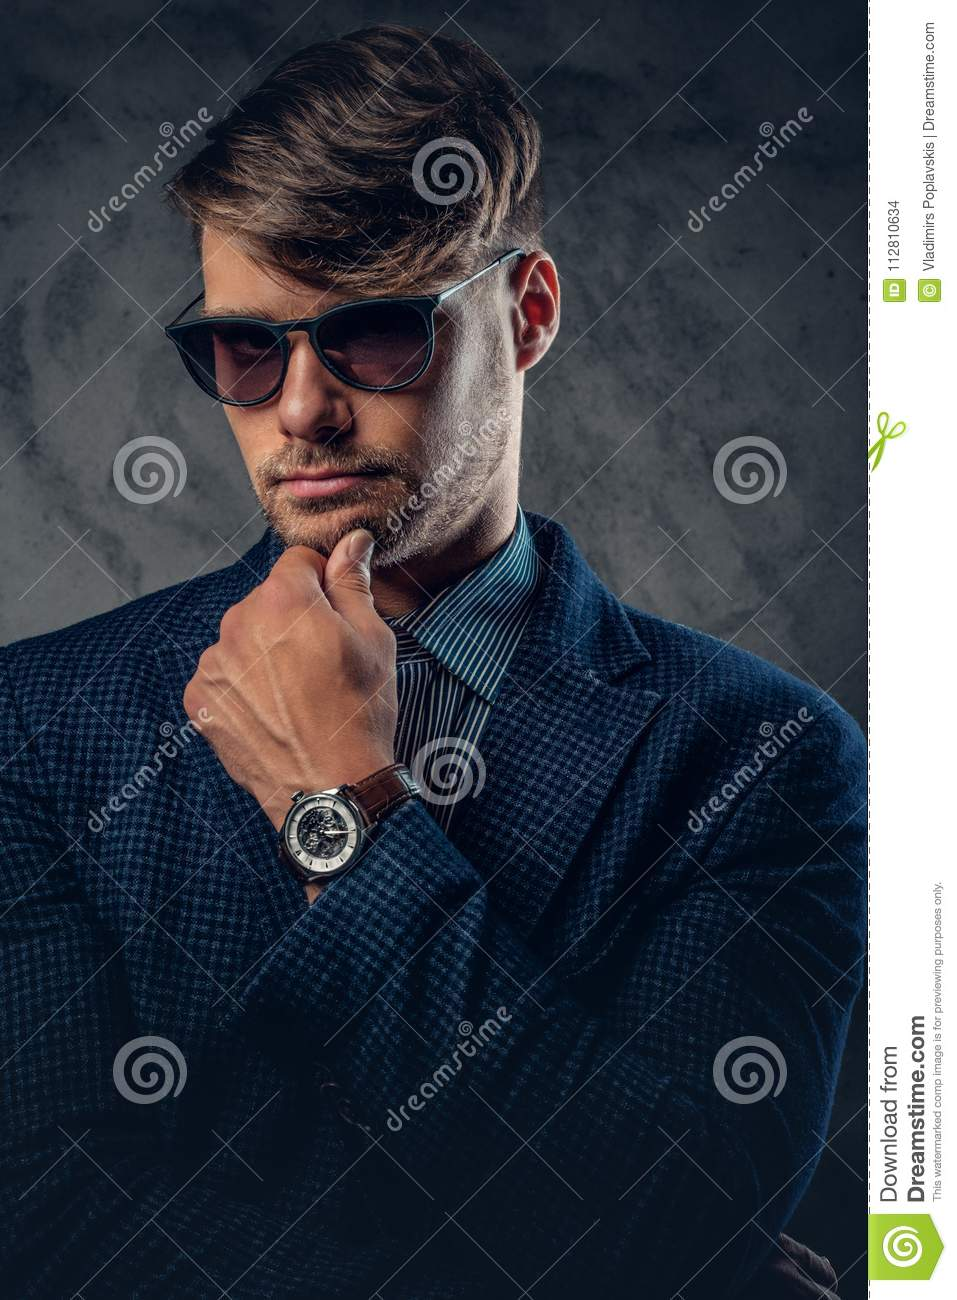 304423e7d1a0 A Man In A Suit And Sunglasses On Grey Background. Stock Photo ...